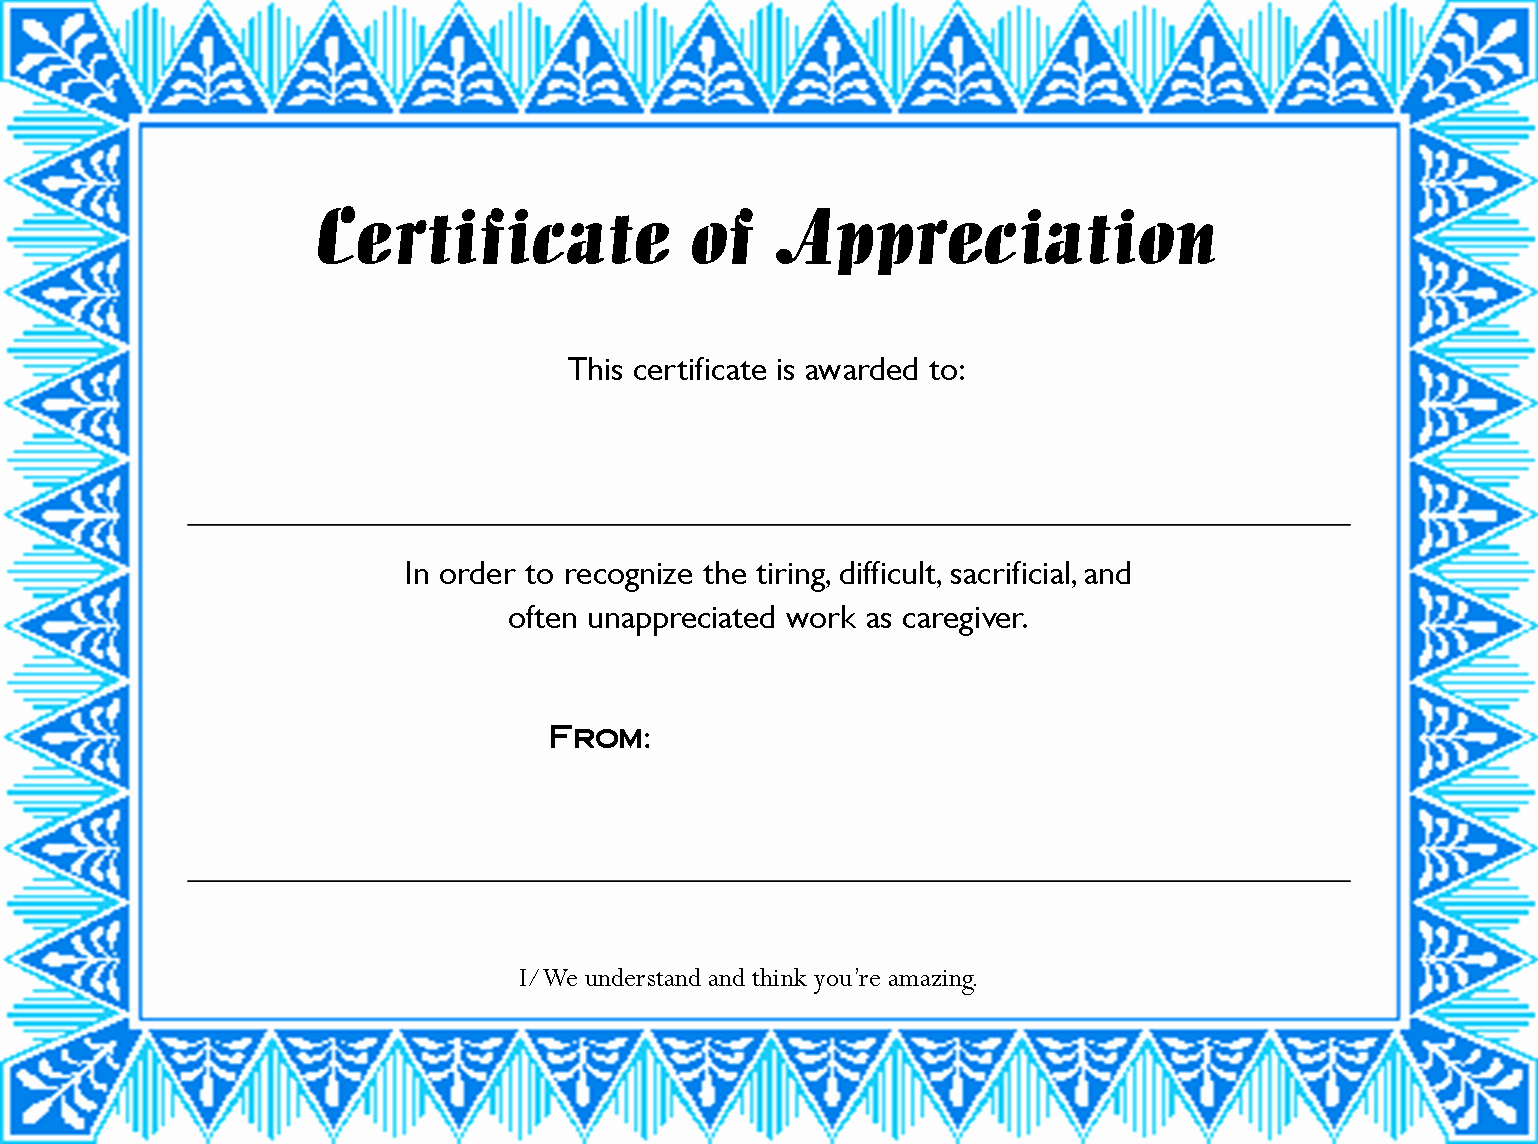 Recognition Certificate Templates Free Printable Awesome Fill In Certificates Appreciation to Pin On